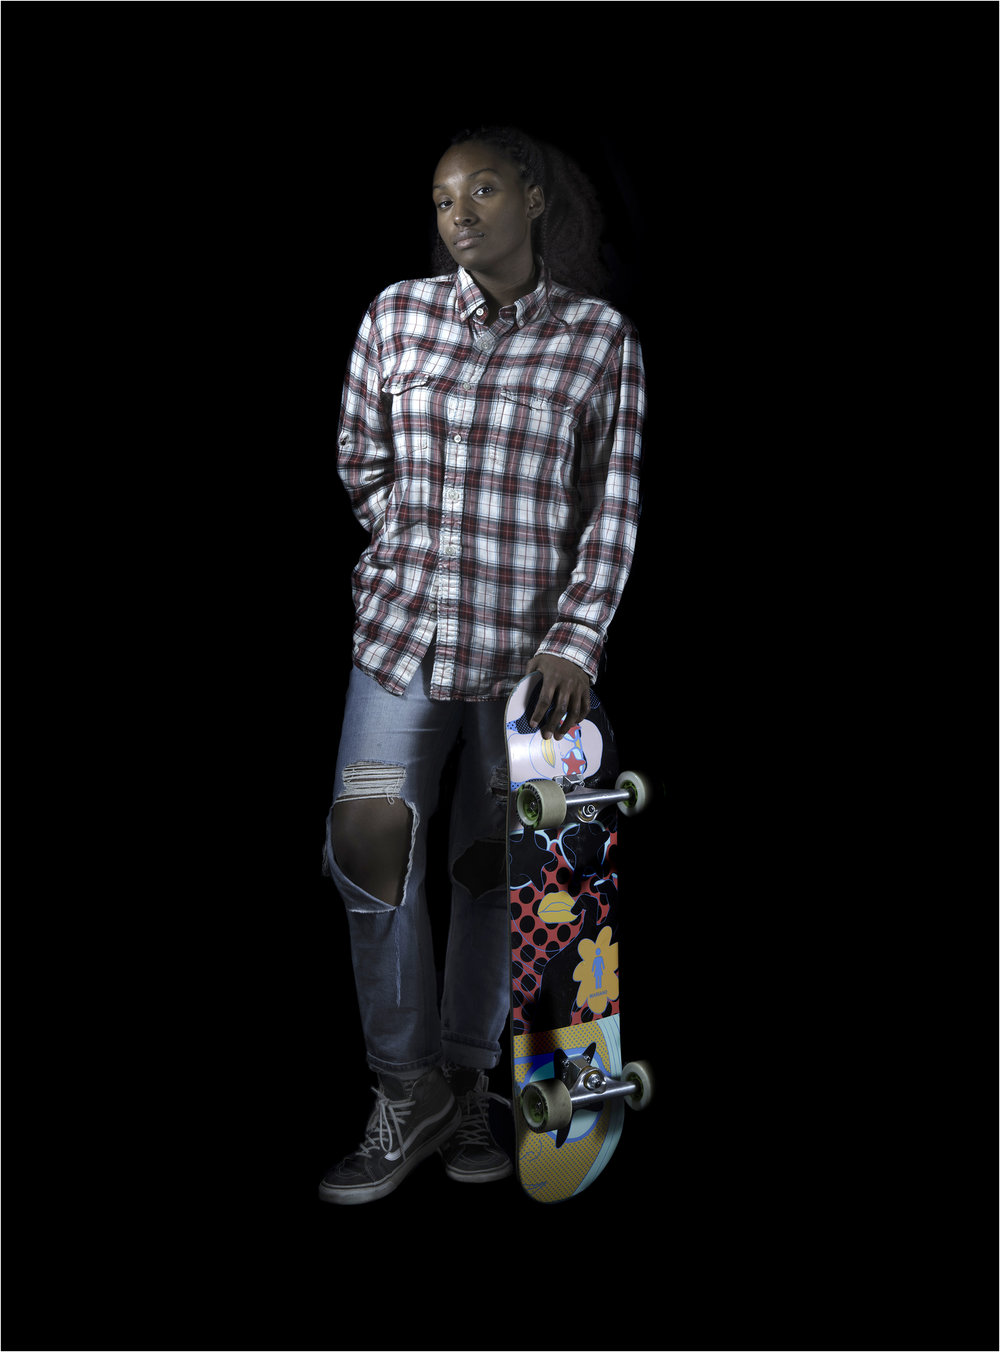 New_17x23_144_Imani Belser_Tomboy Project .jpg